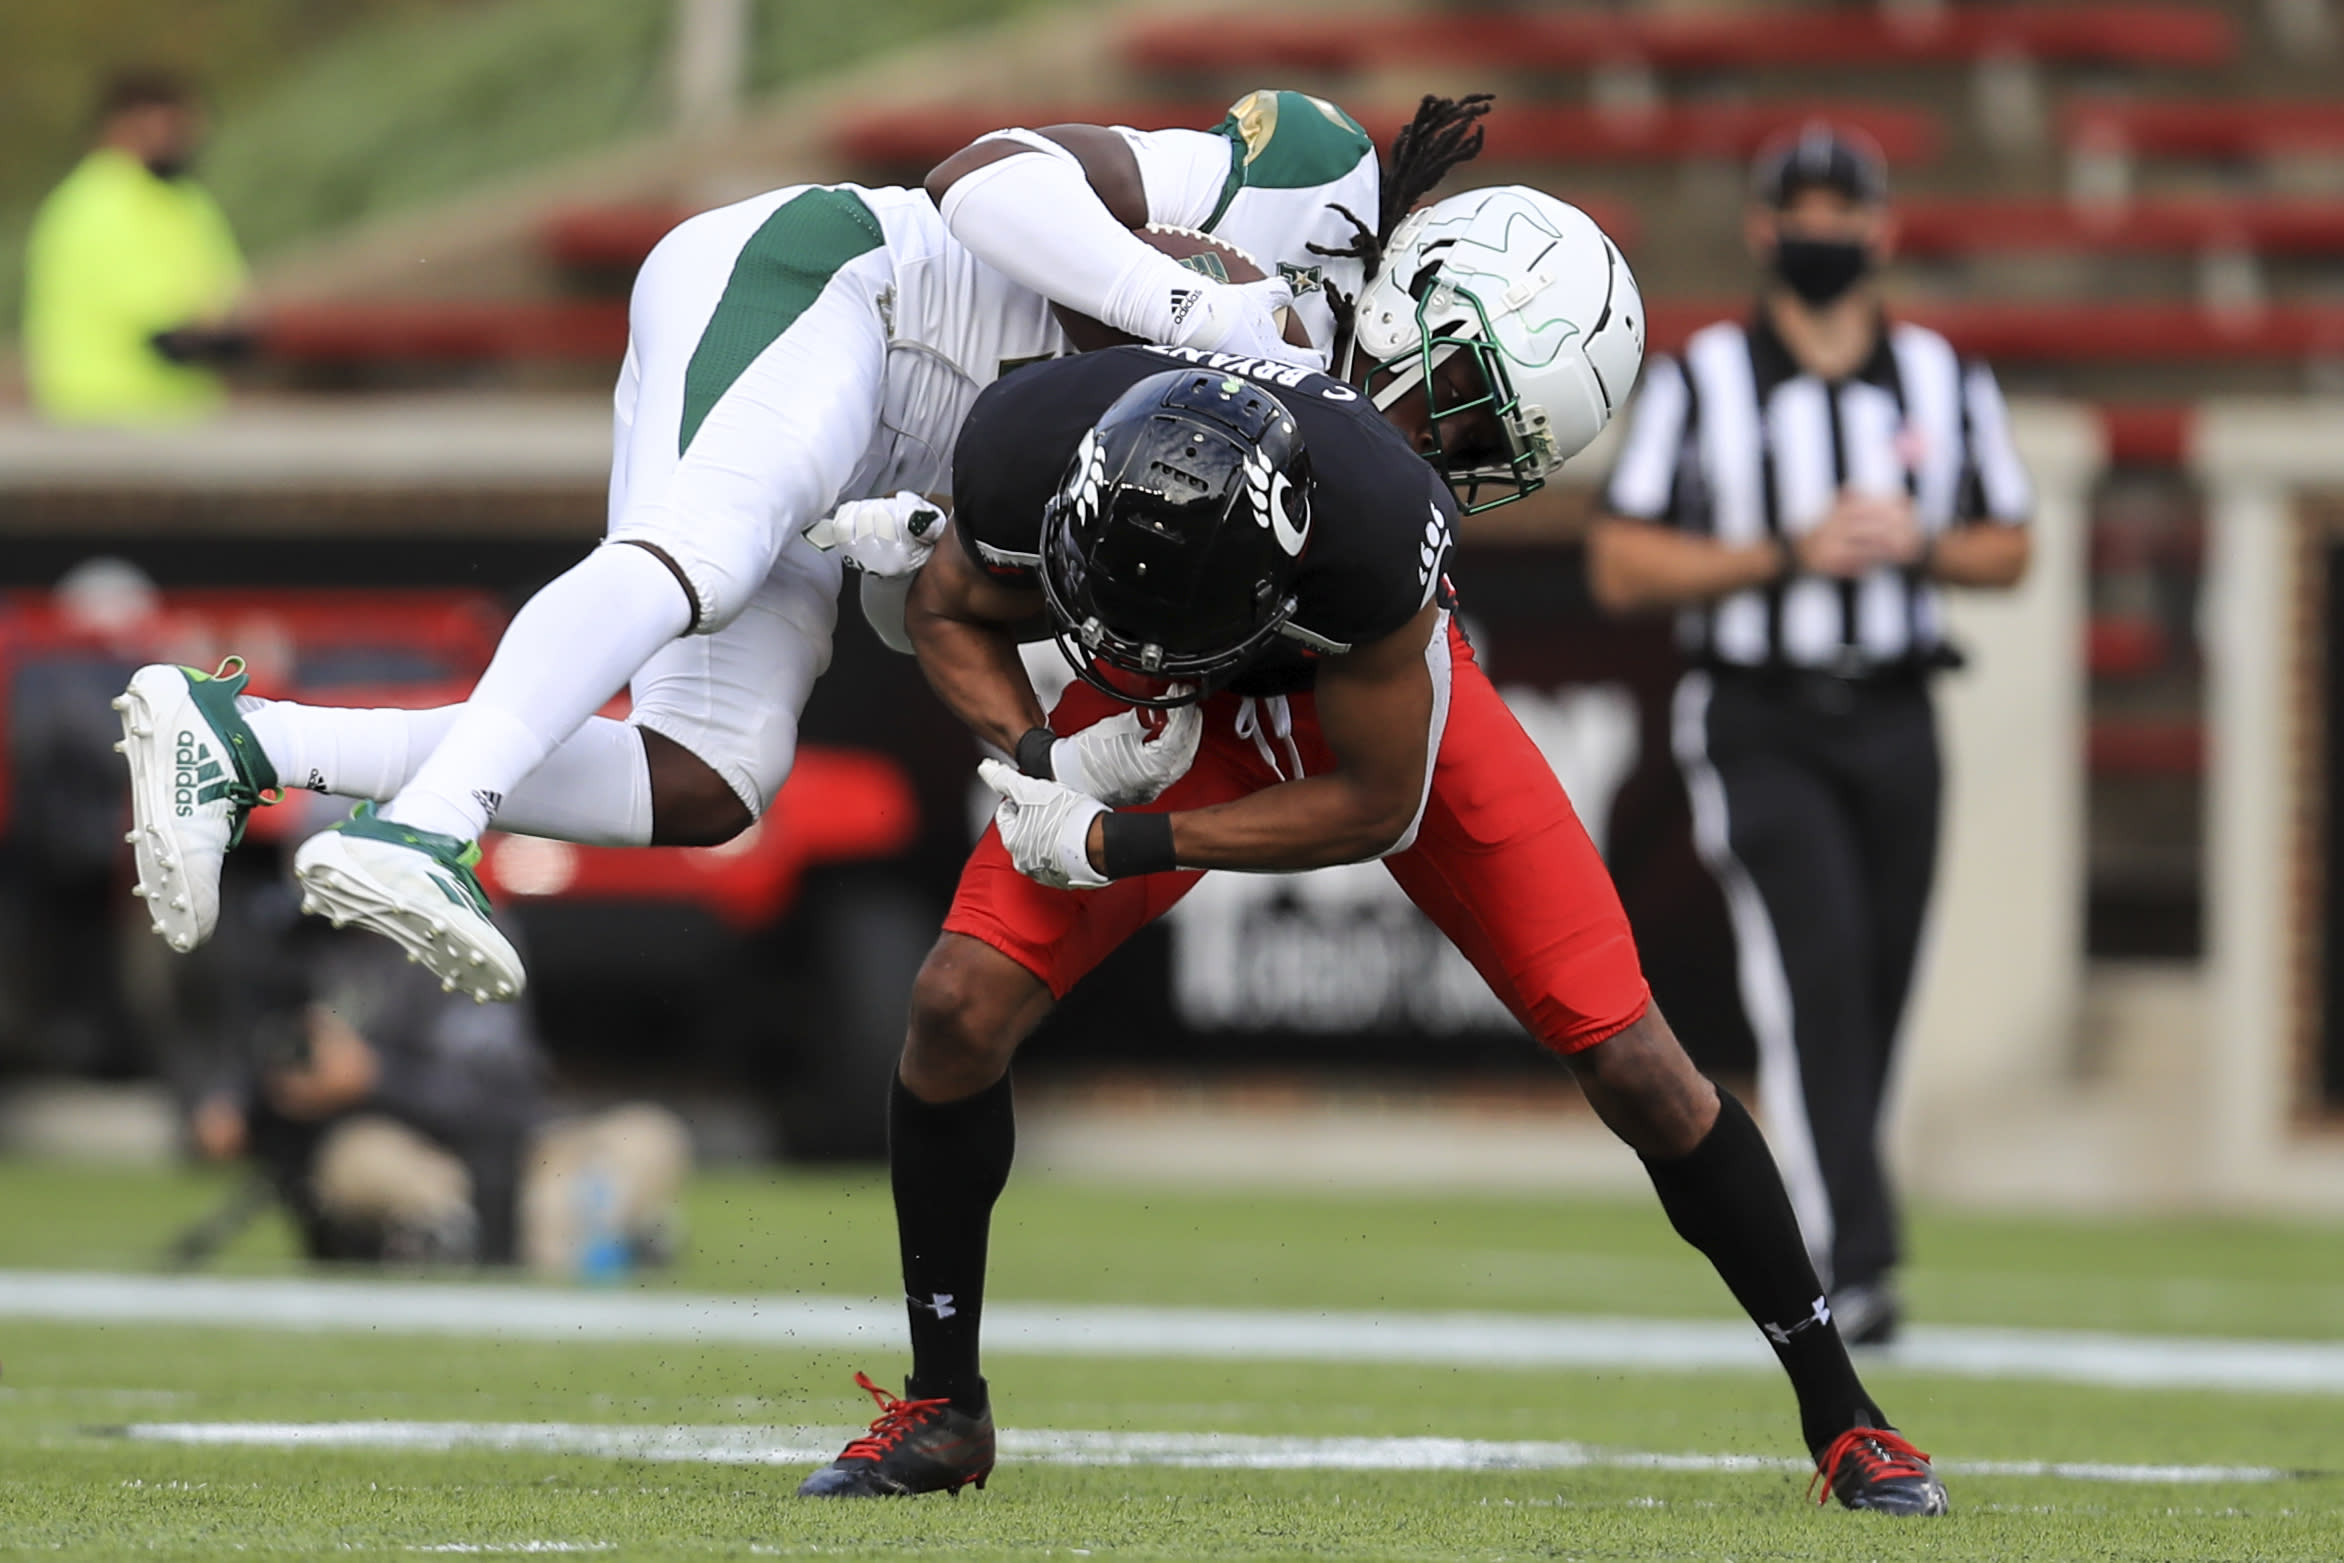 South Florida wide receiver Randall St. Felix, top, makes a catch and is upended by Cincinnati cornerback Coby Bryant, bottom, during the second half of an NCAA college football game, Saturday, Oct. 3, 2020, in Cincinnati. (AP Photo/Aaron Doster)